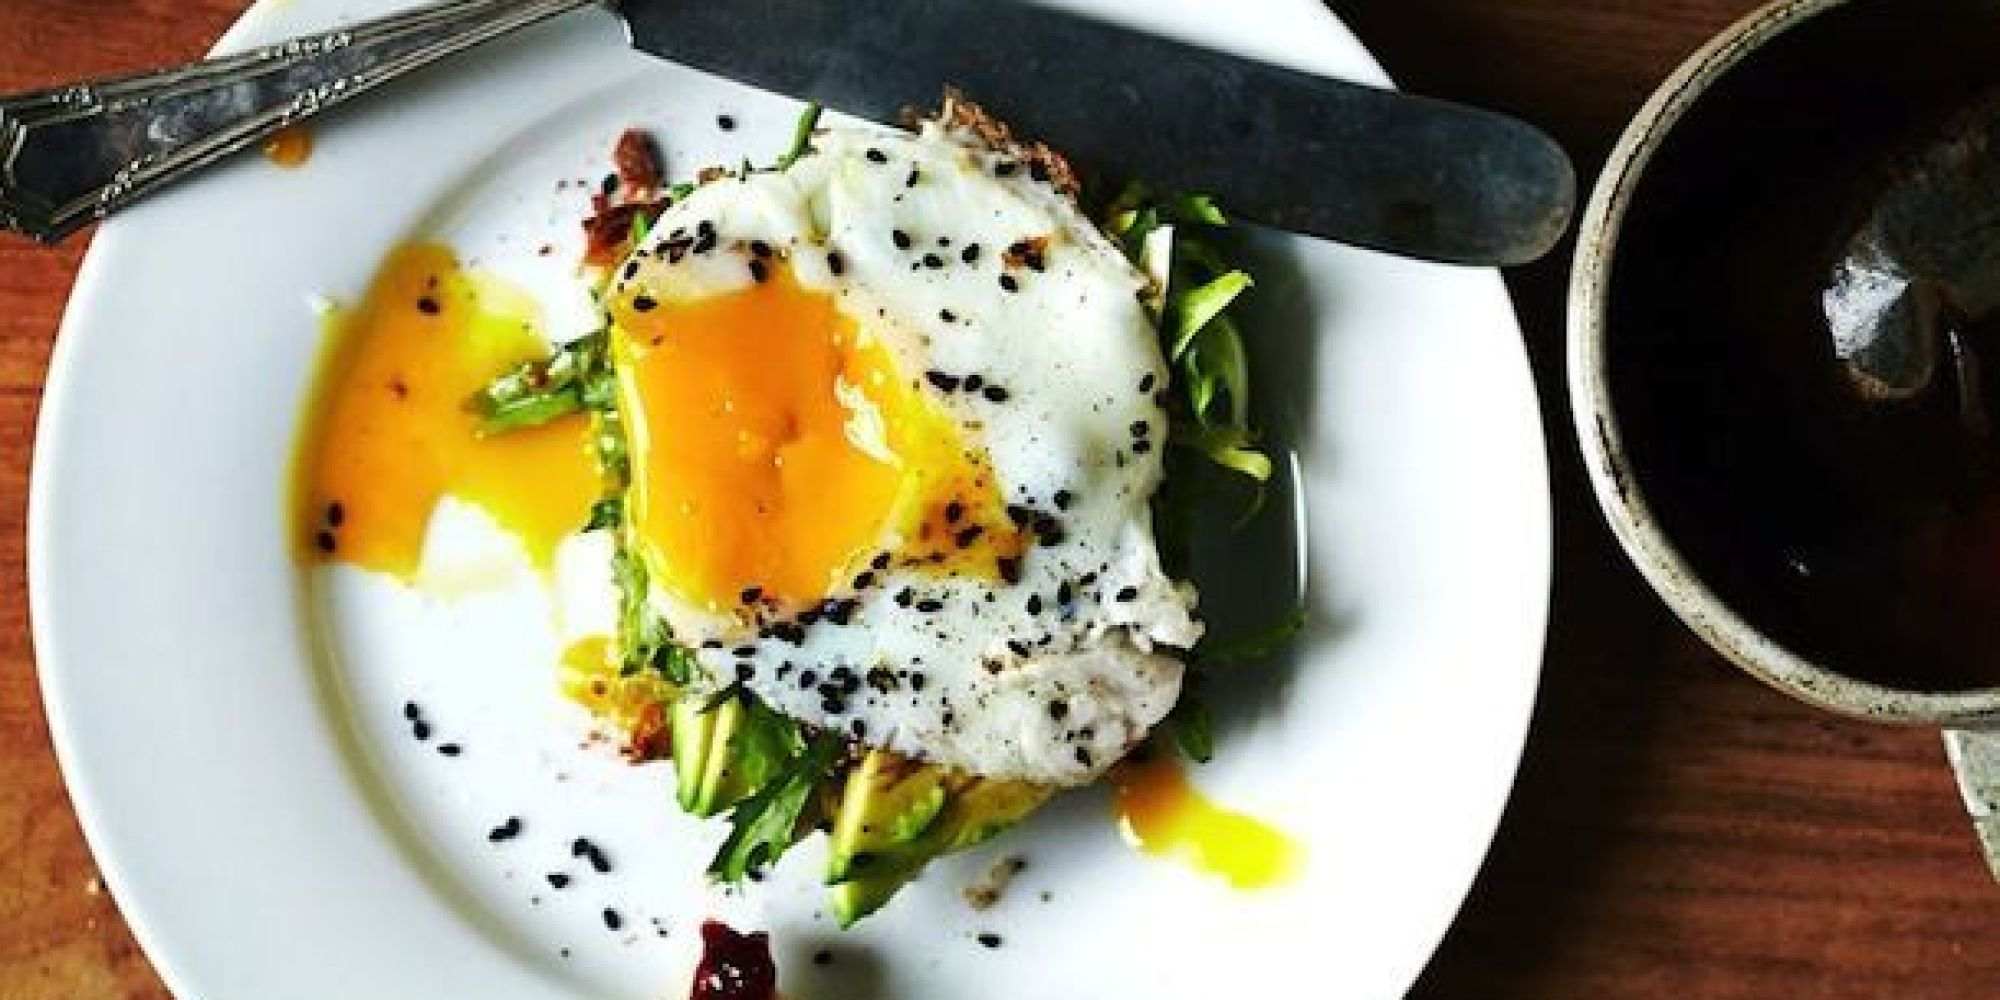 Breakfast: The Best Way to Start the Day? | HuffPost UK